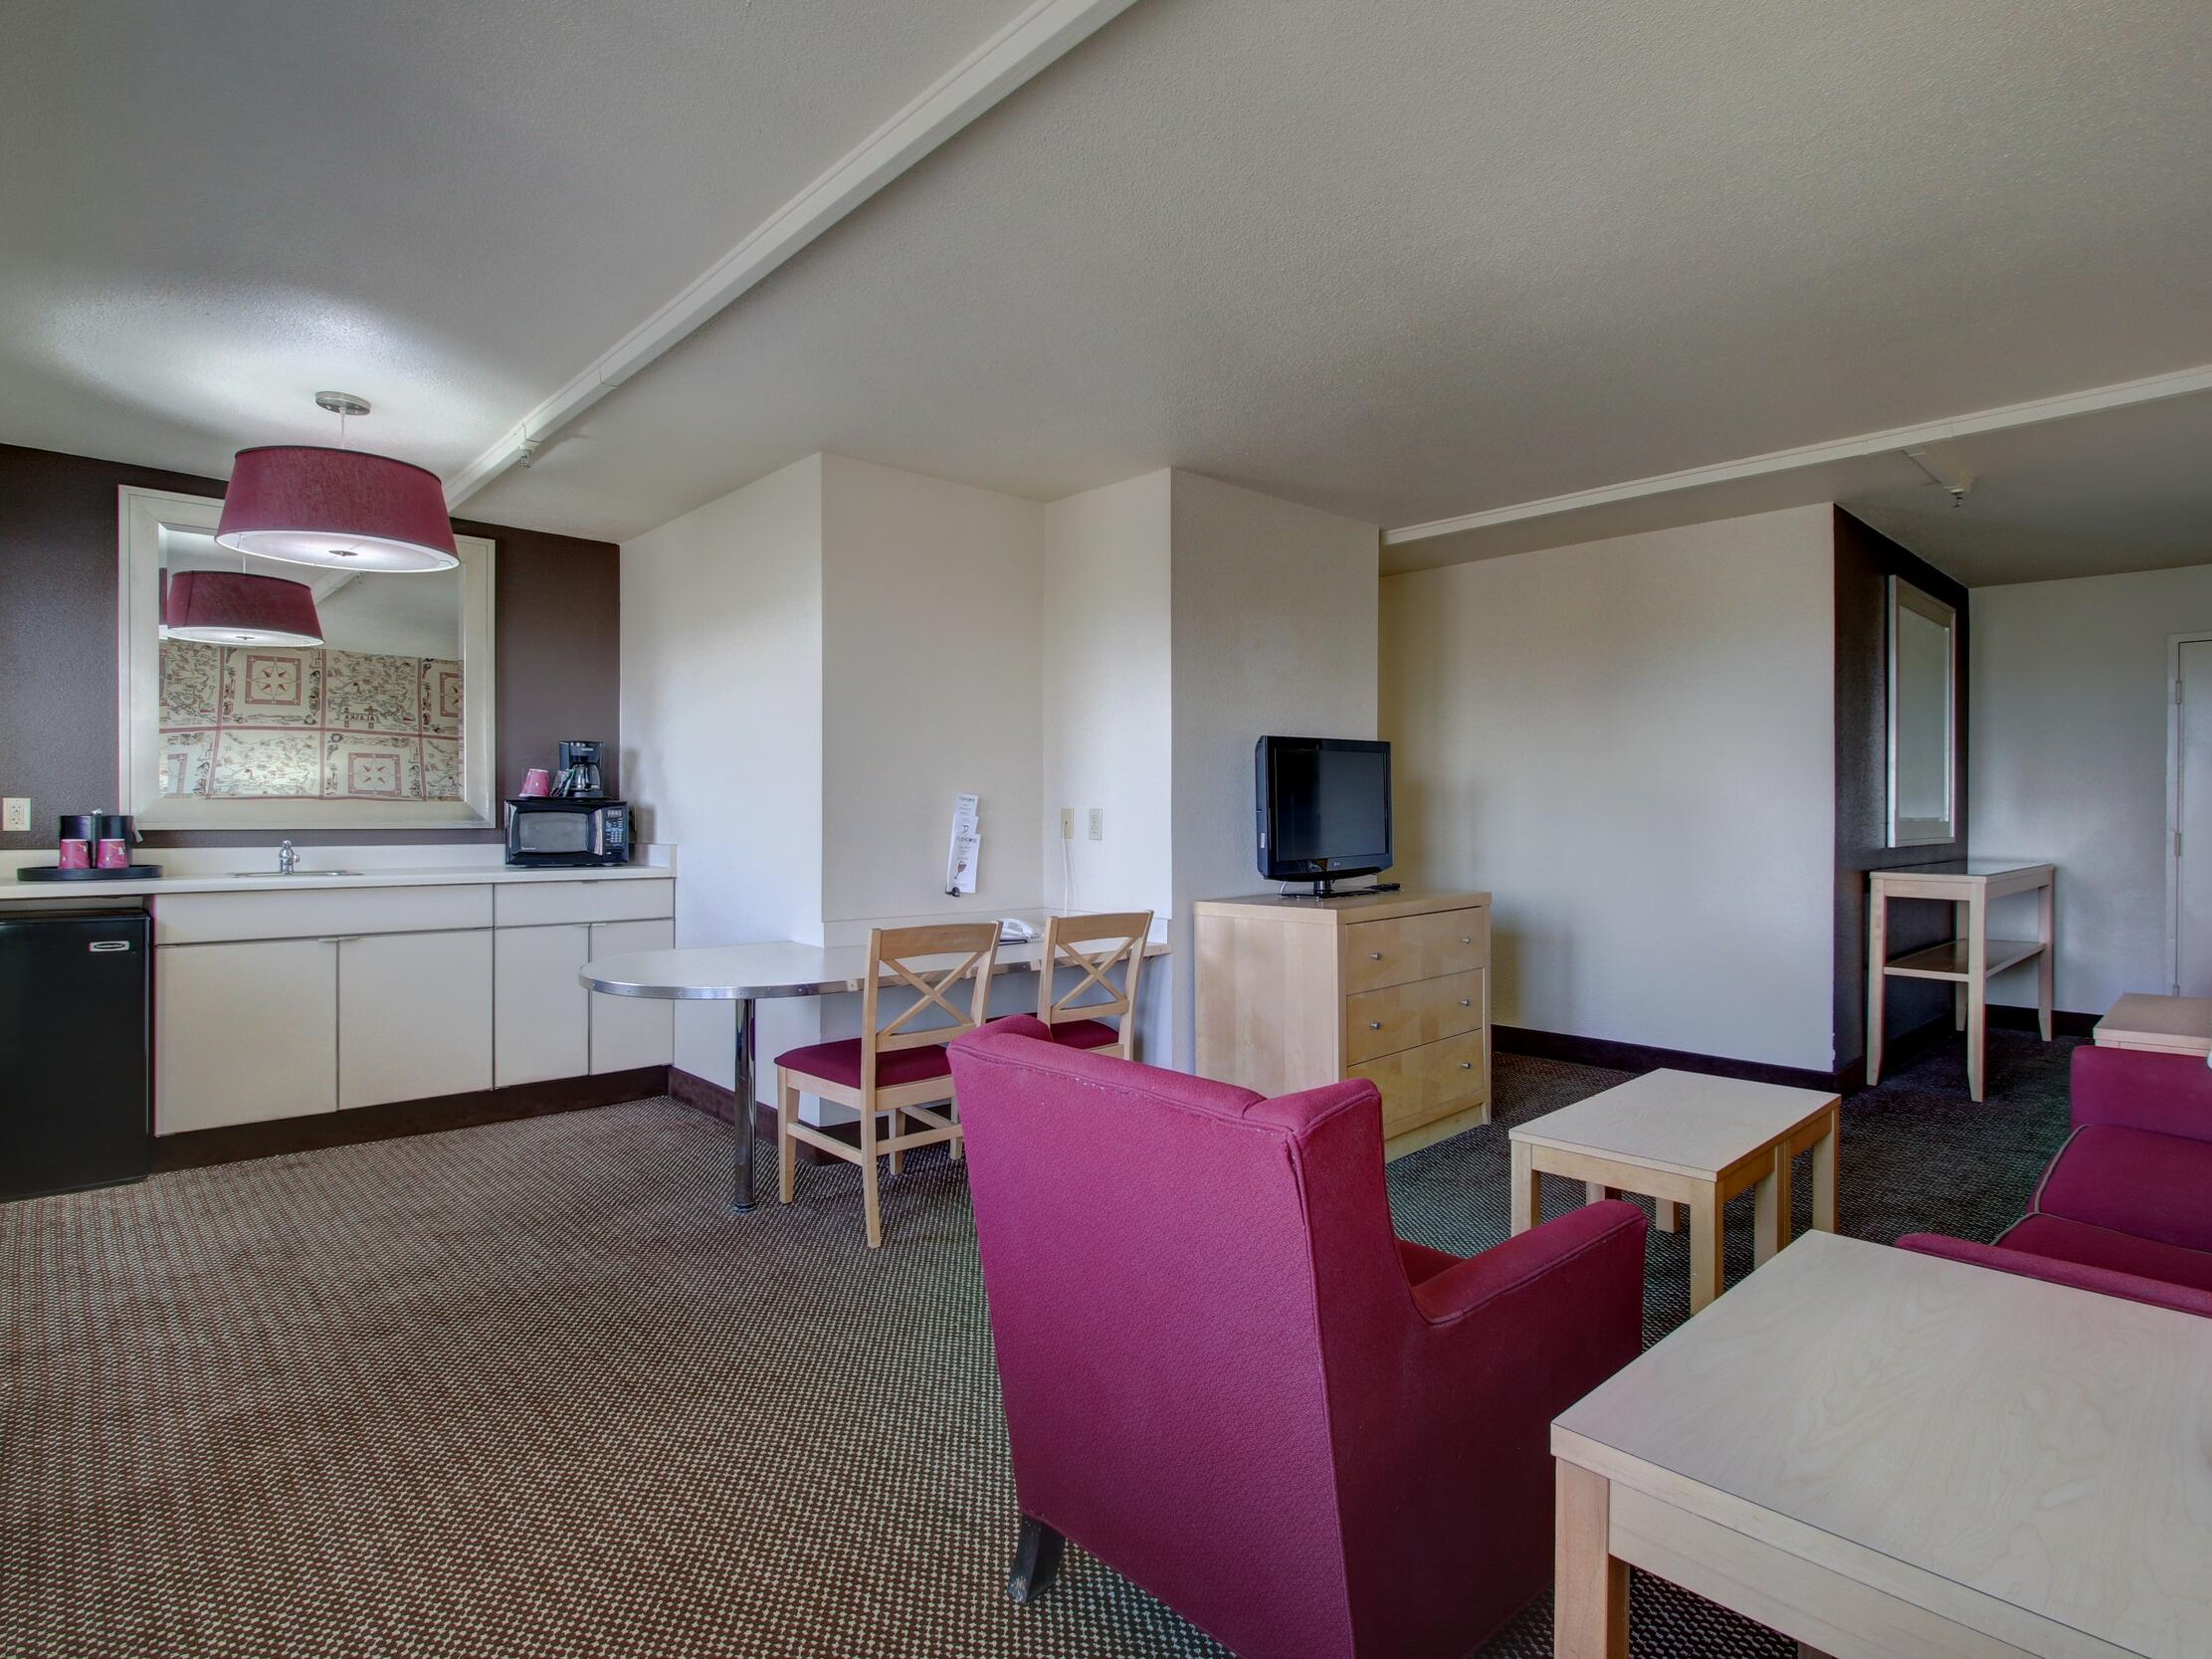 Pantry area and living area in the King Suite at Inlet Tower